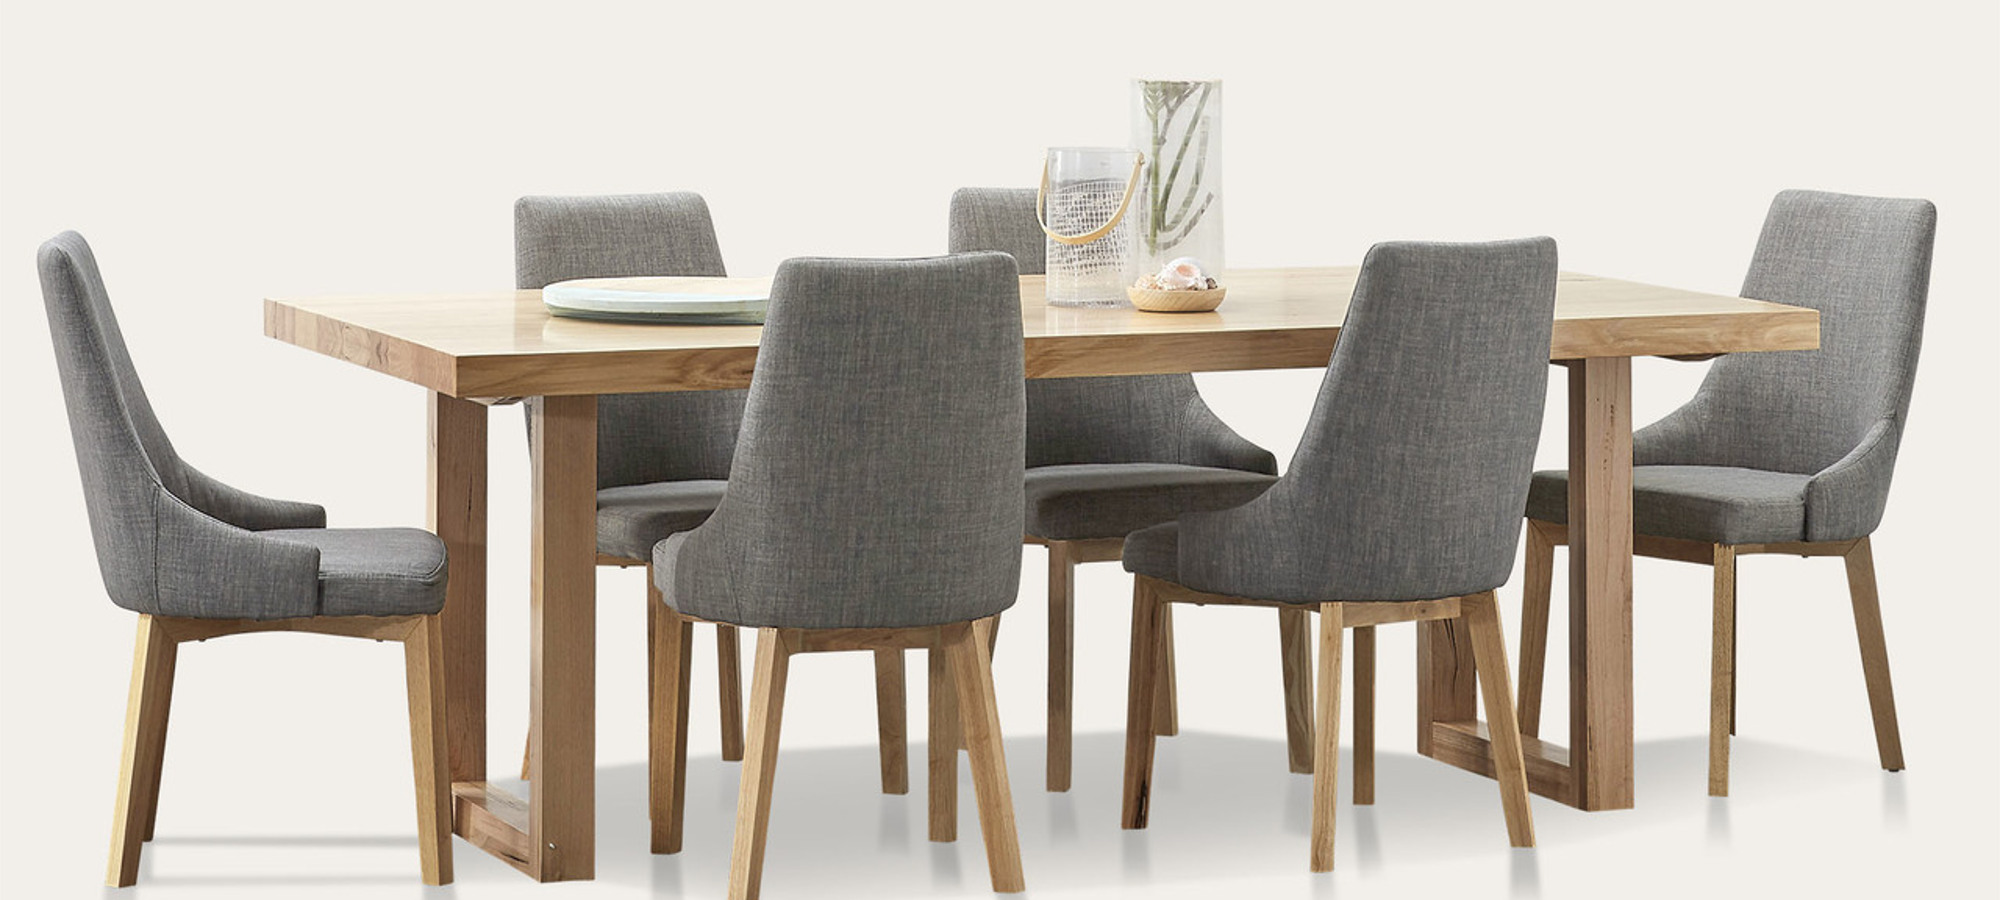 Dining Chairs, Nosttaalgia